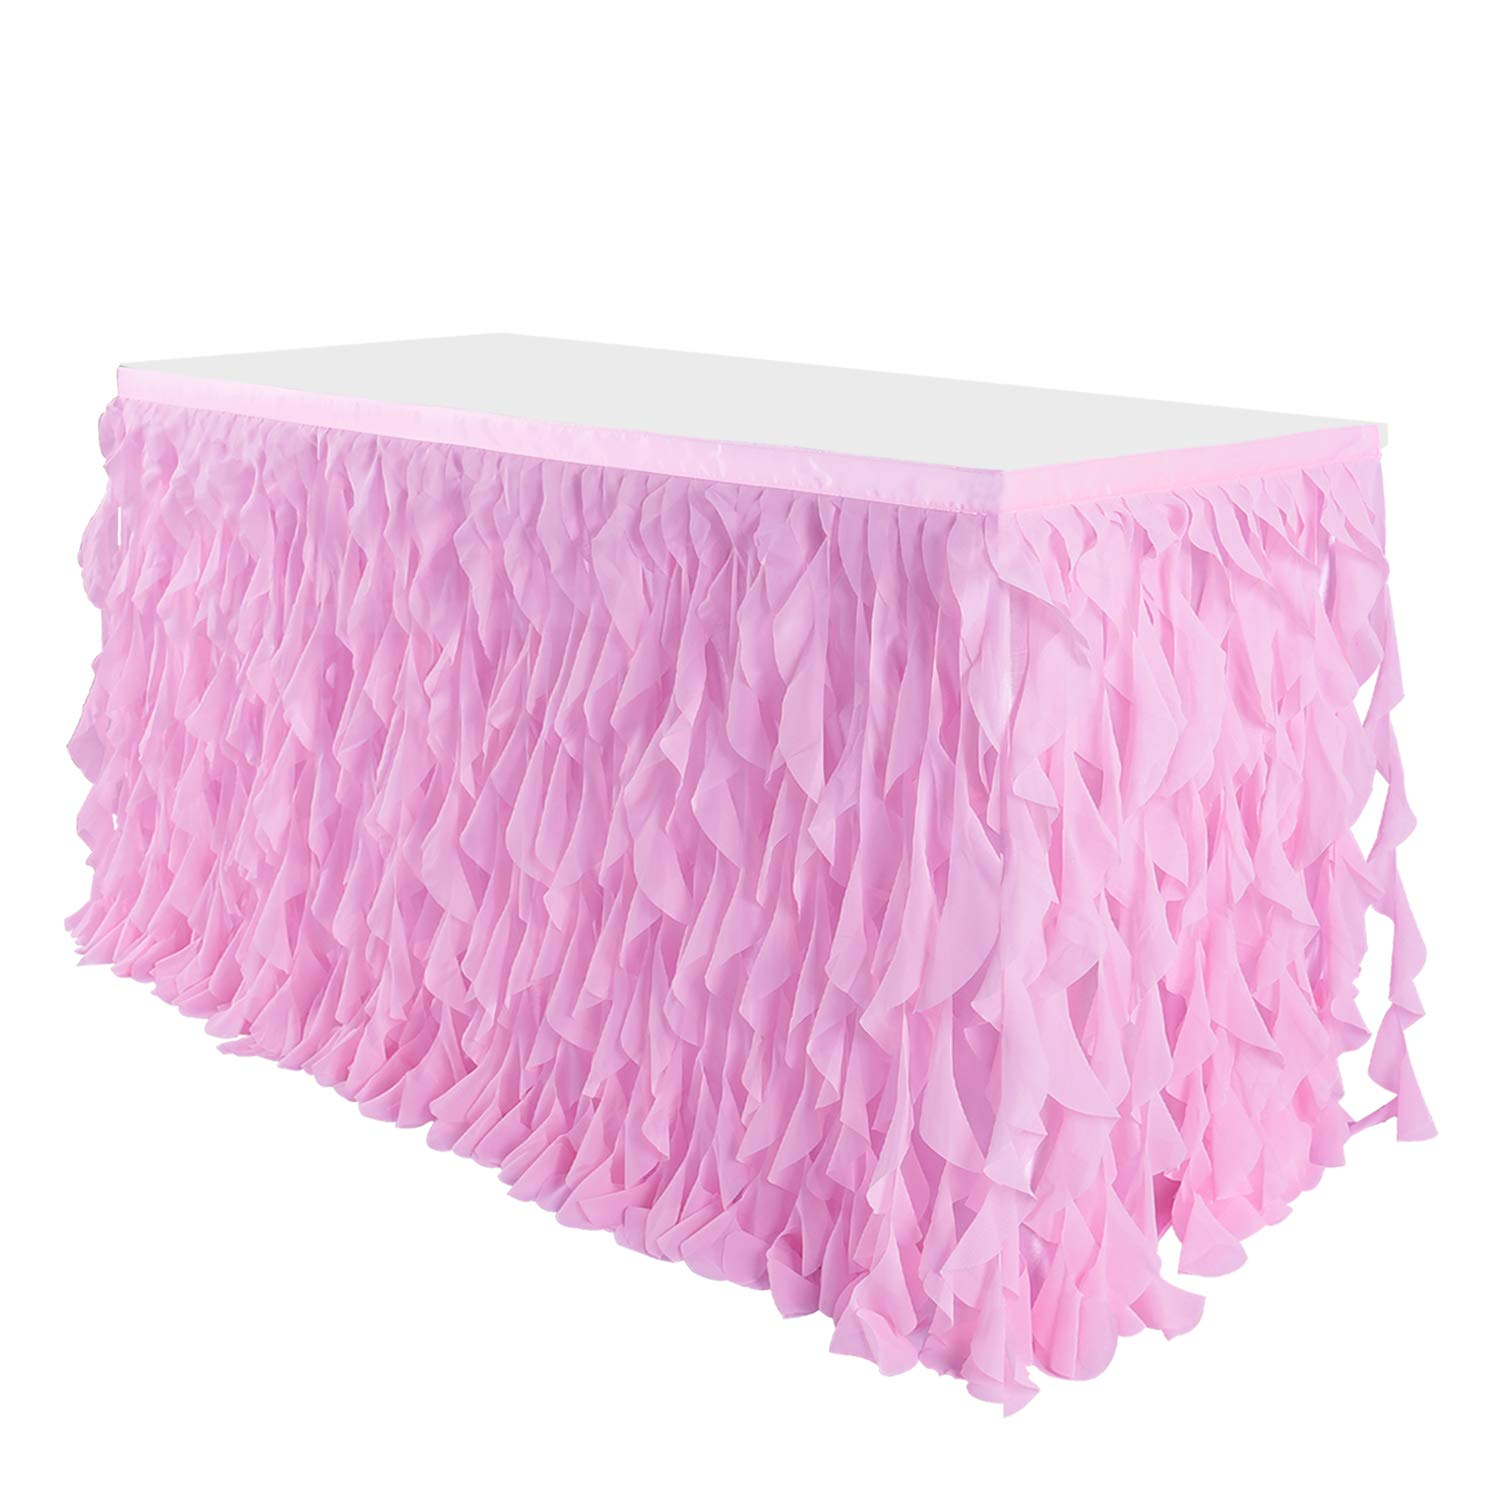 Leegleri 6 ft Pink Curly Willow Table Skirt Tulle Ruffle Table Skirt for Rectangle Table or Round Table,Tutu Table Skirt for Baby Shower,Wedding,Birthday Party (L 6(ft) H 30in) by leegleri